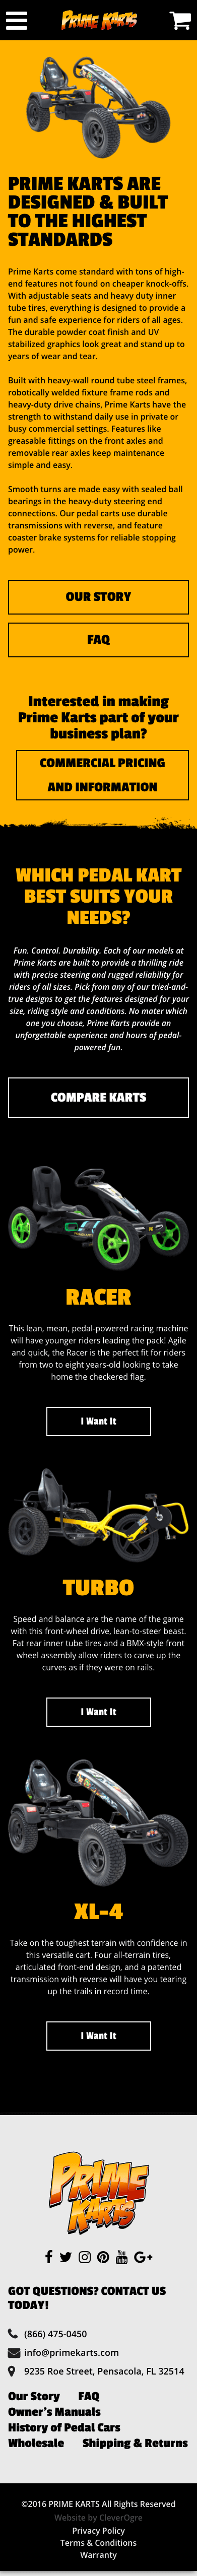 Mockup of Prime Karts website homepage by CleverOgre on mobile device